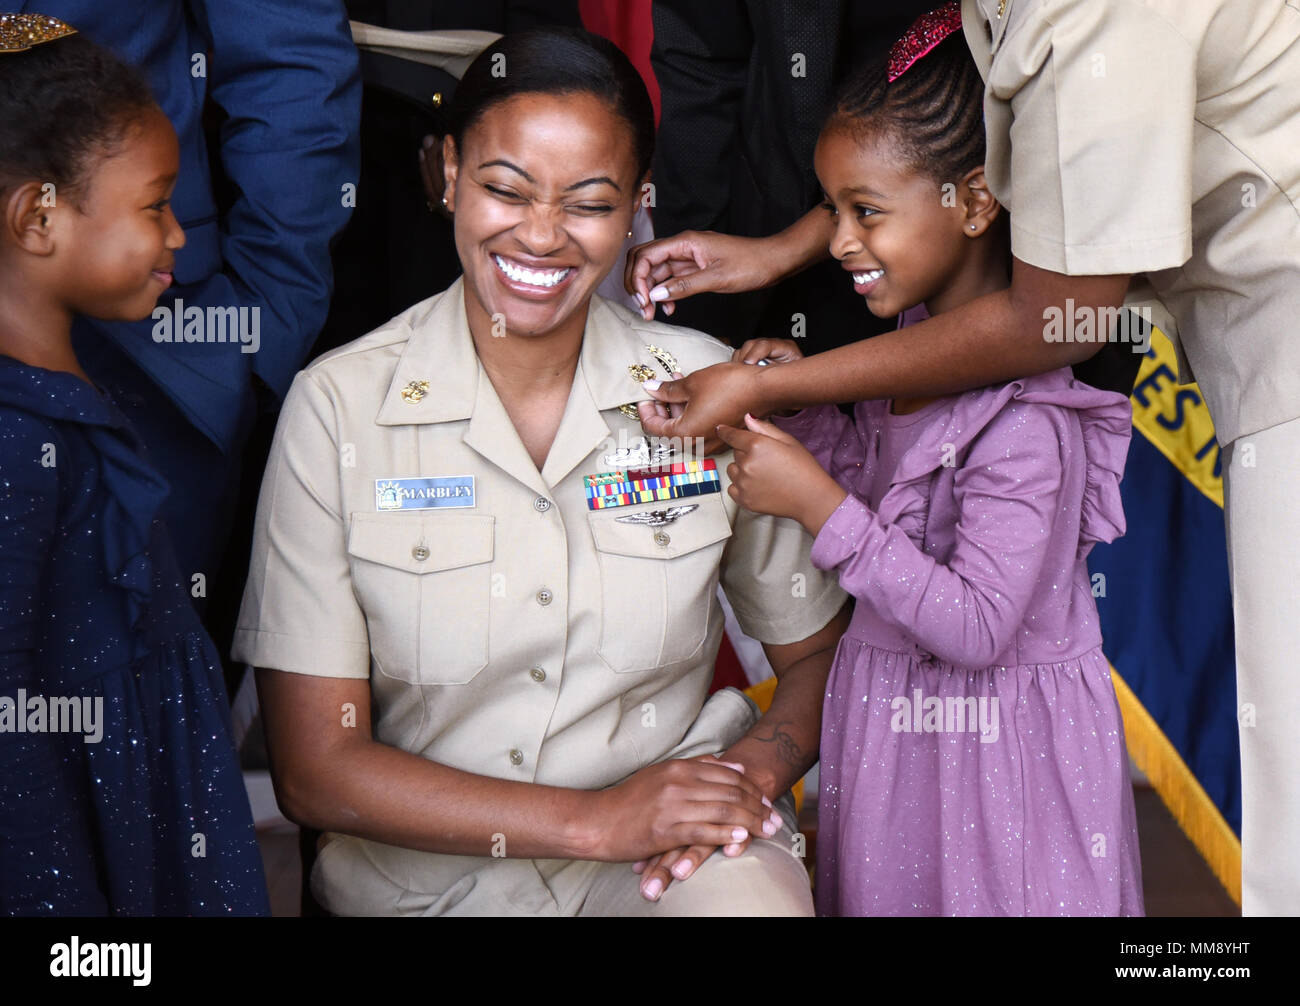 GARDEN CITY, New York (Sept. 15, 2017) Chief Navy Counselor Danielle Marbley, a native of Newark, New Jersey assigned to Navy Recruiting District New York, having her new anchors pinned on by her daughters during a chief petty officer pinning ceremony at the Cradle of Aviation Museum. (U.S. Navy photo by Chief Mass Communication Specialist Travis Simmons/Released) - Stock Image